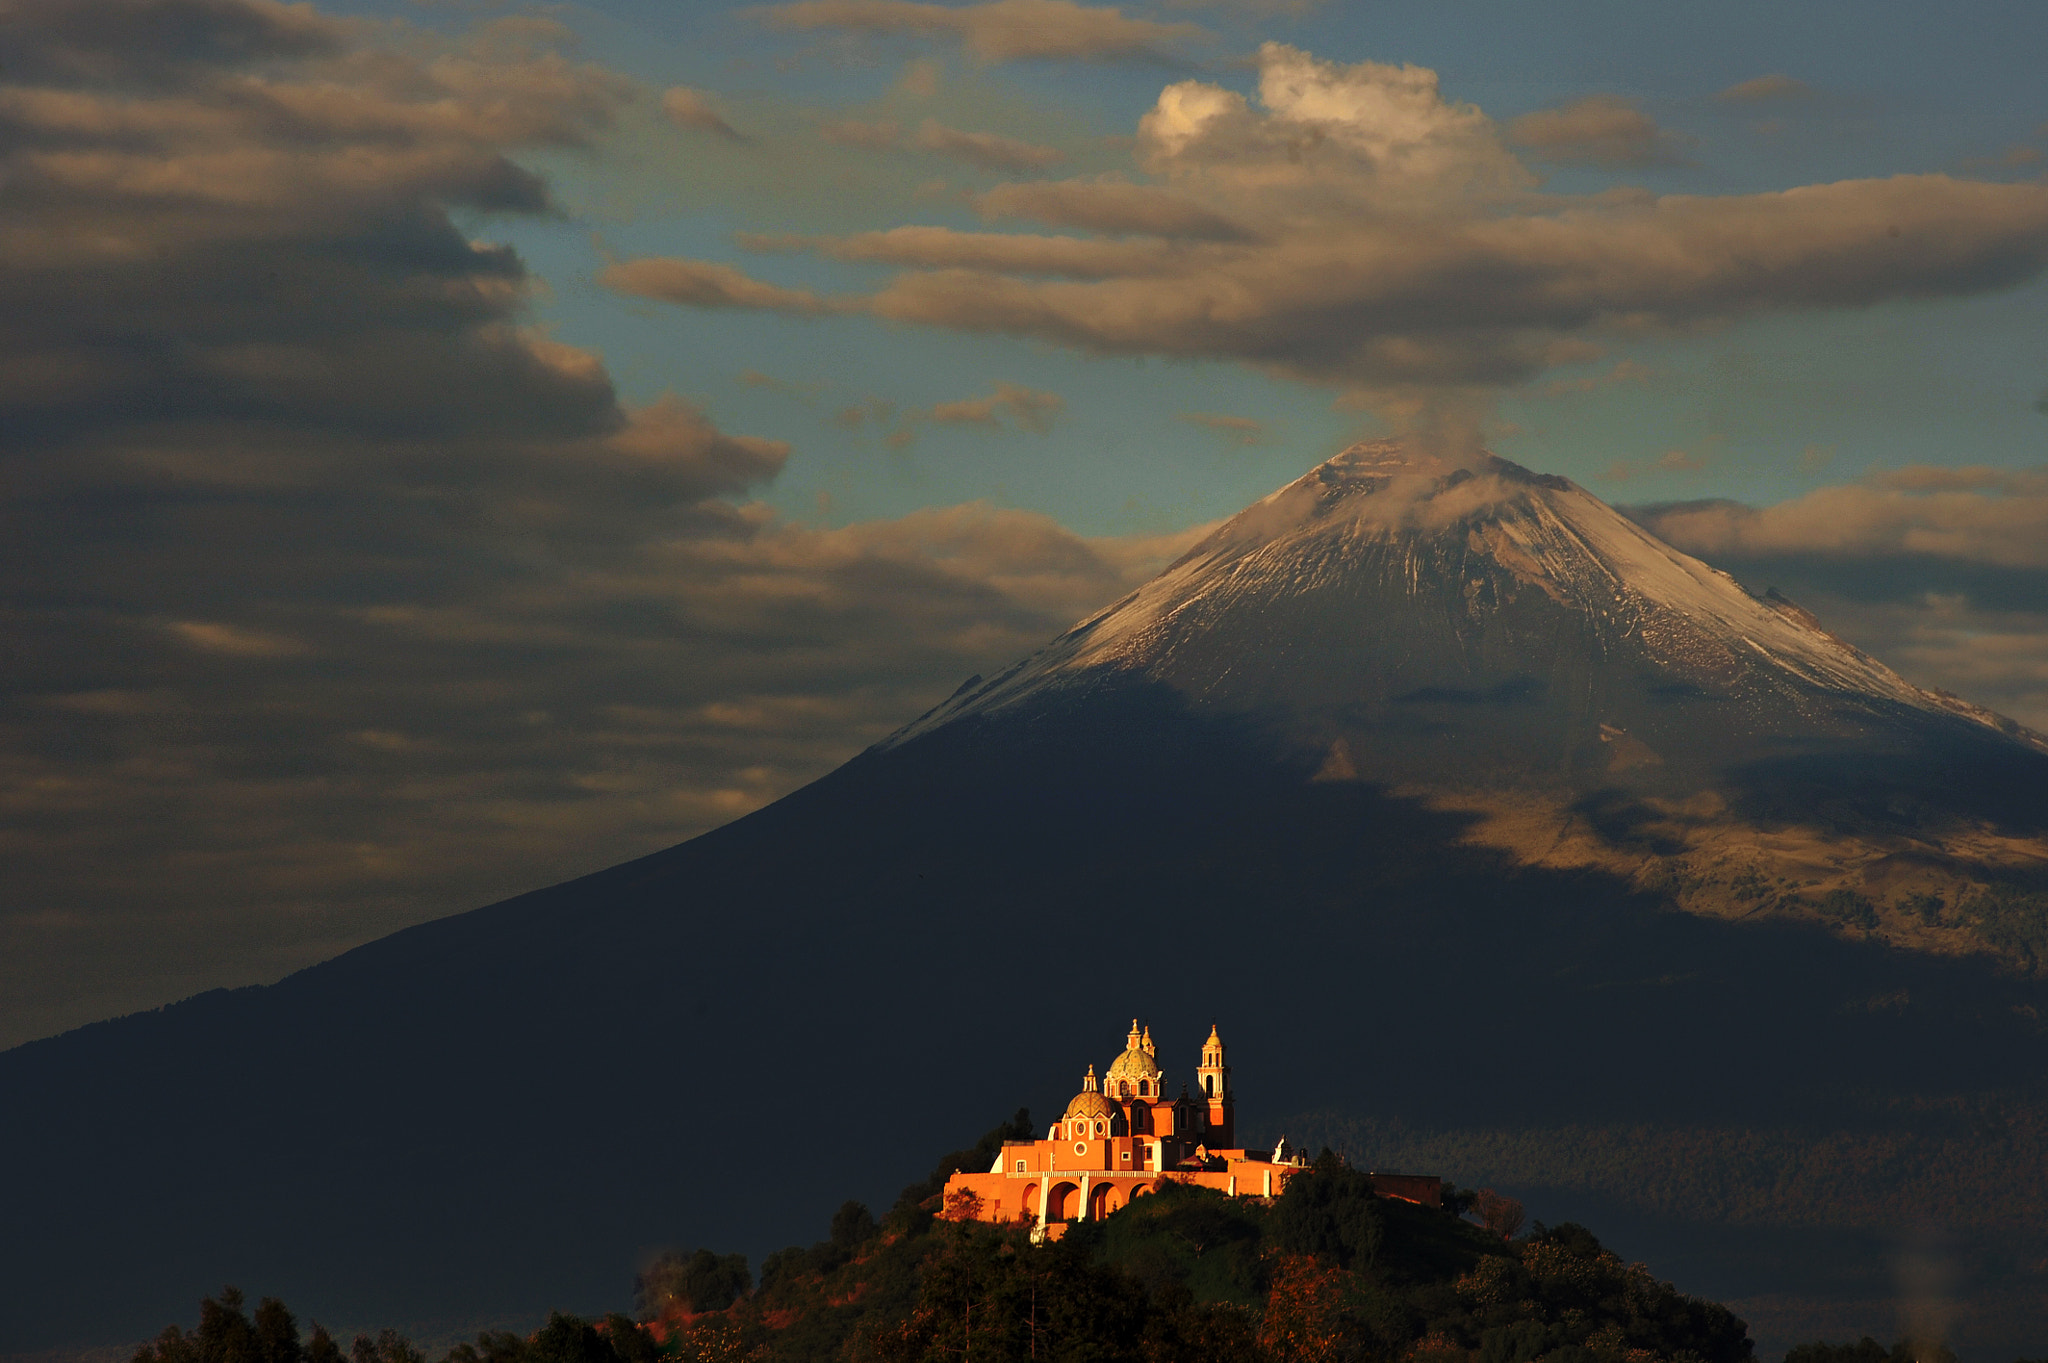 Photograph In the morning by Cristobal Garciaferro Rubio on 500px